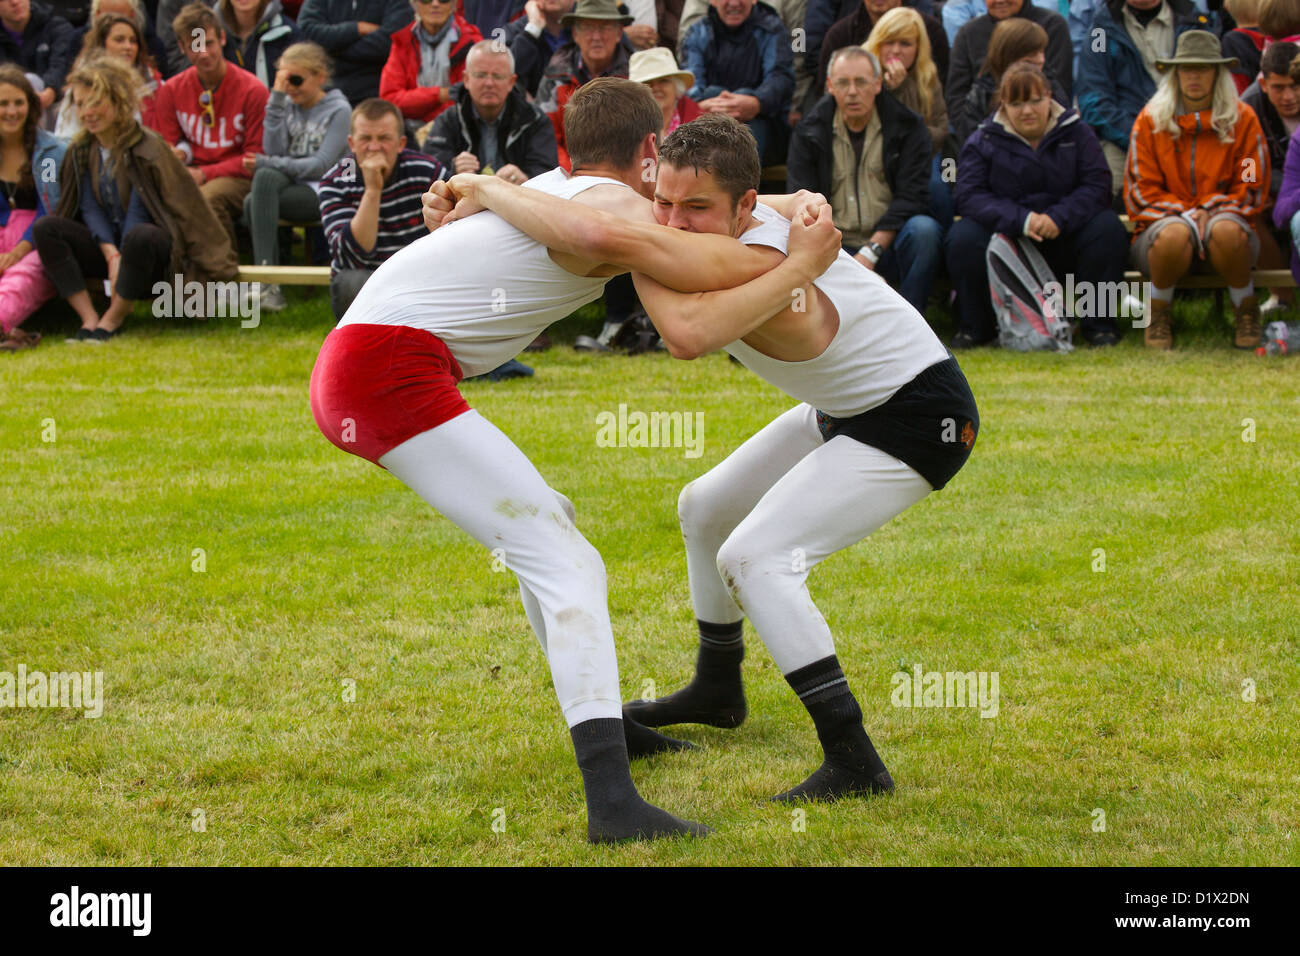 Cumberland & Westmorland Wrestlers in clinch, with crowd behind at Grasmere Lakeland Sports,Lake District National - Stock Image